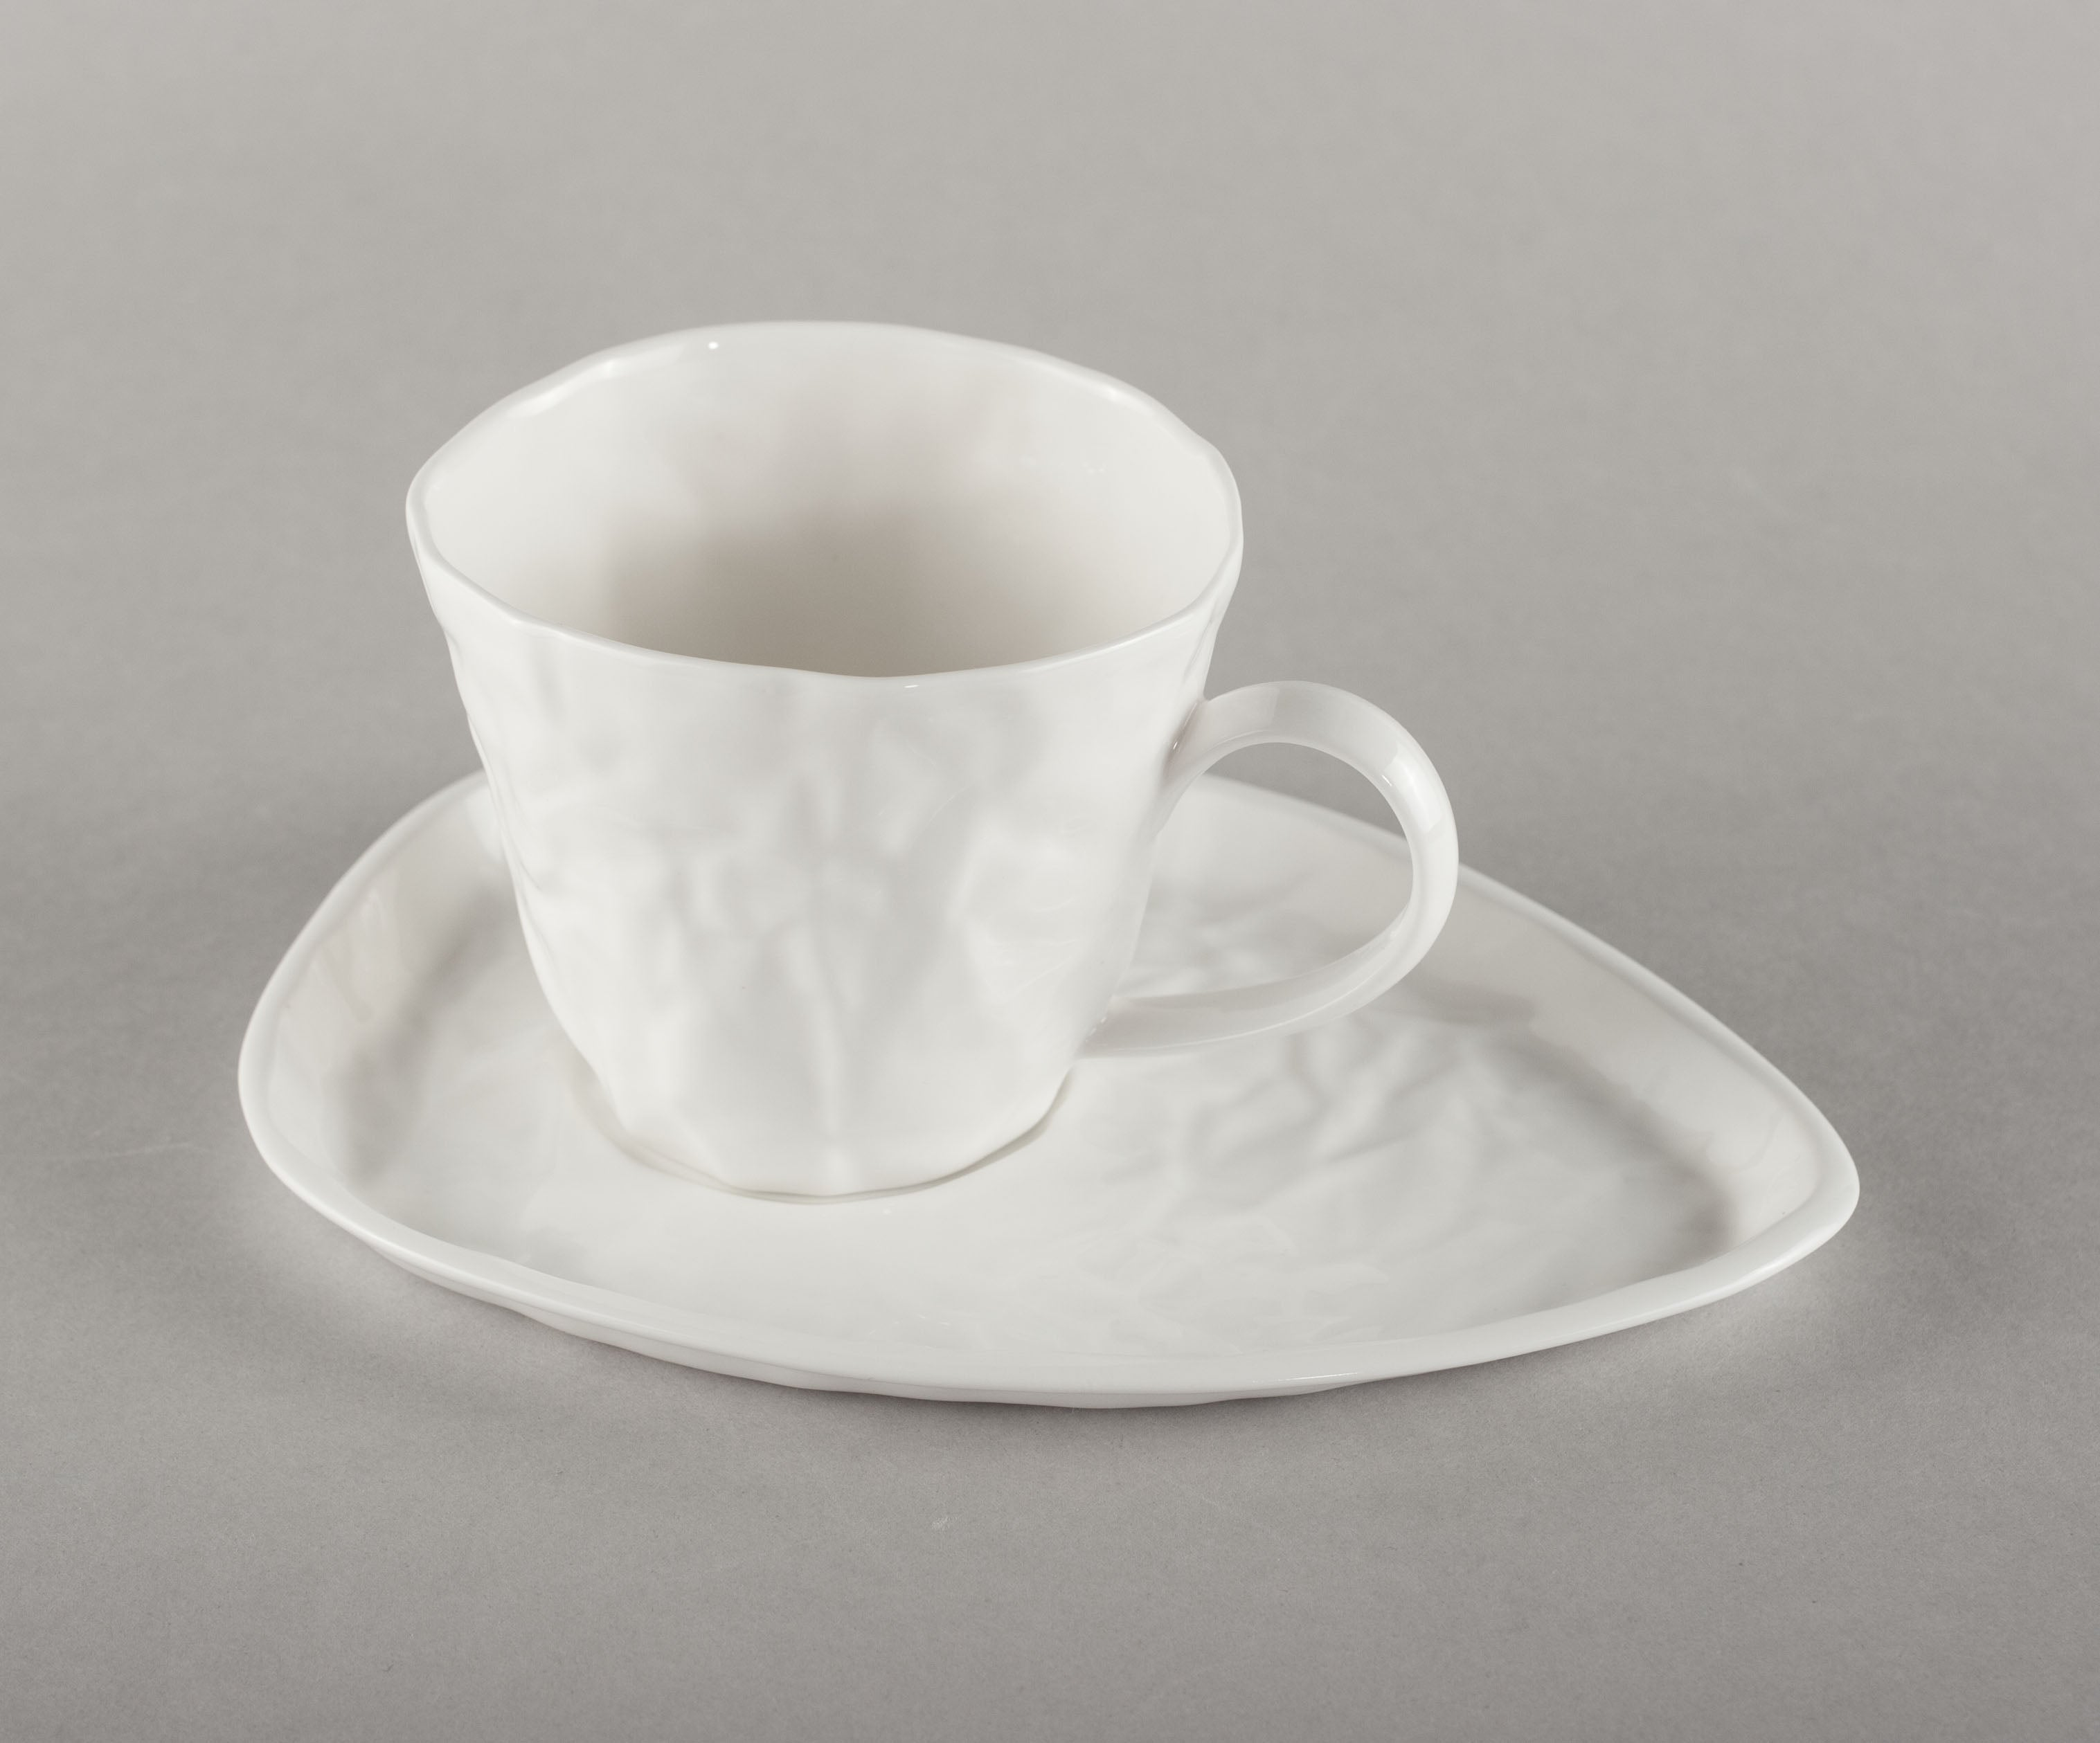 Porcelain Crumpled Coffee Co Mug Base (mug not included)